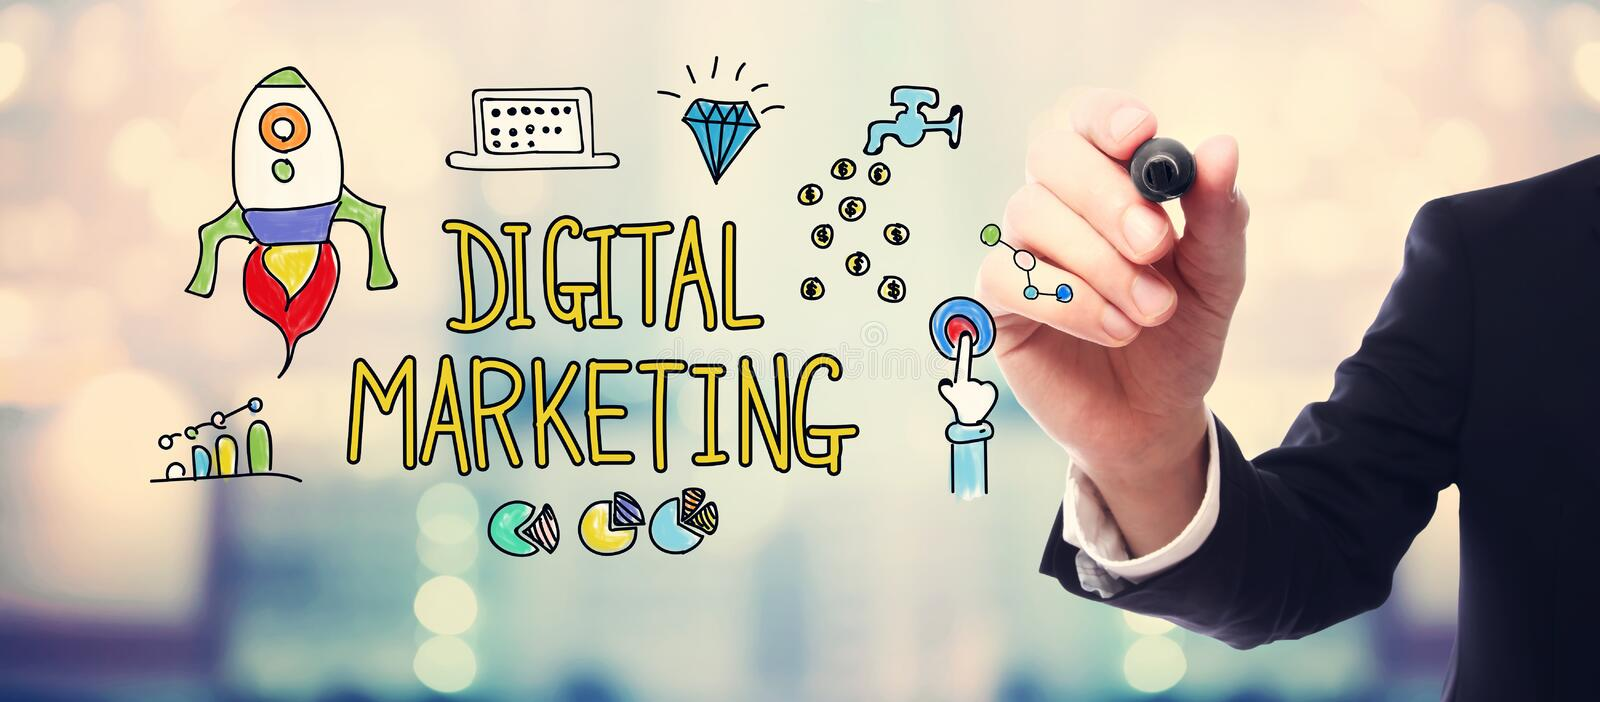 DIgital Marketing concept with businessman royalty free stock image